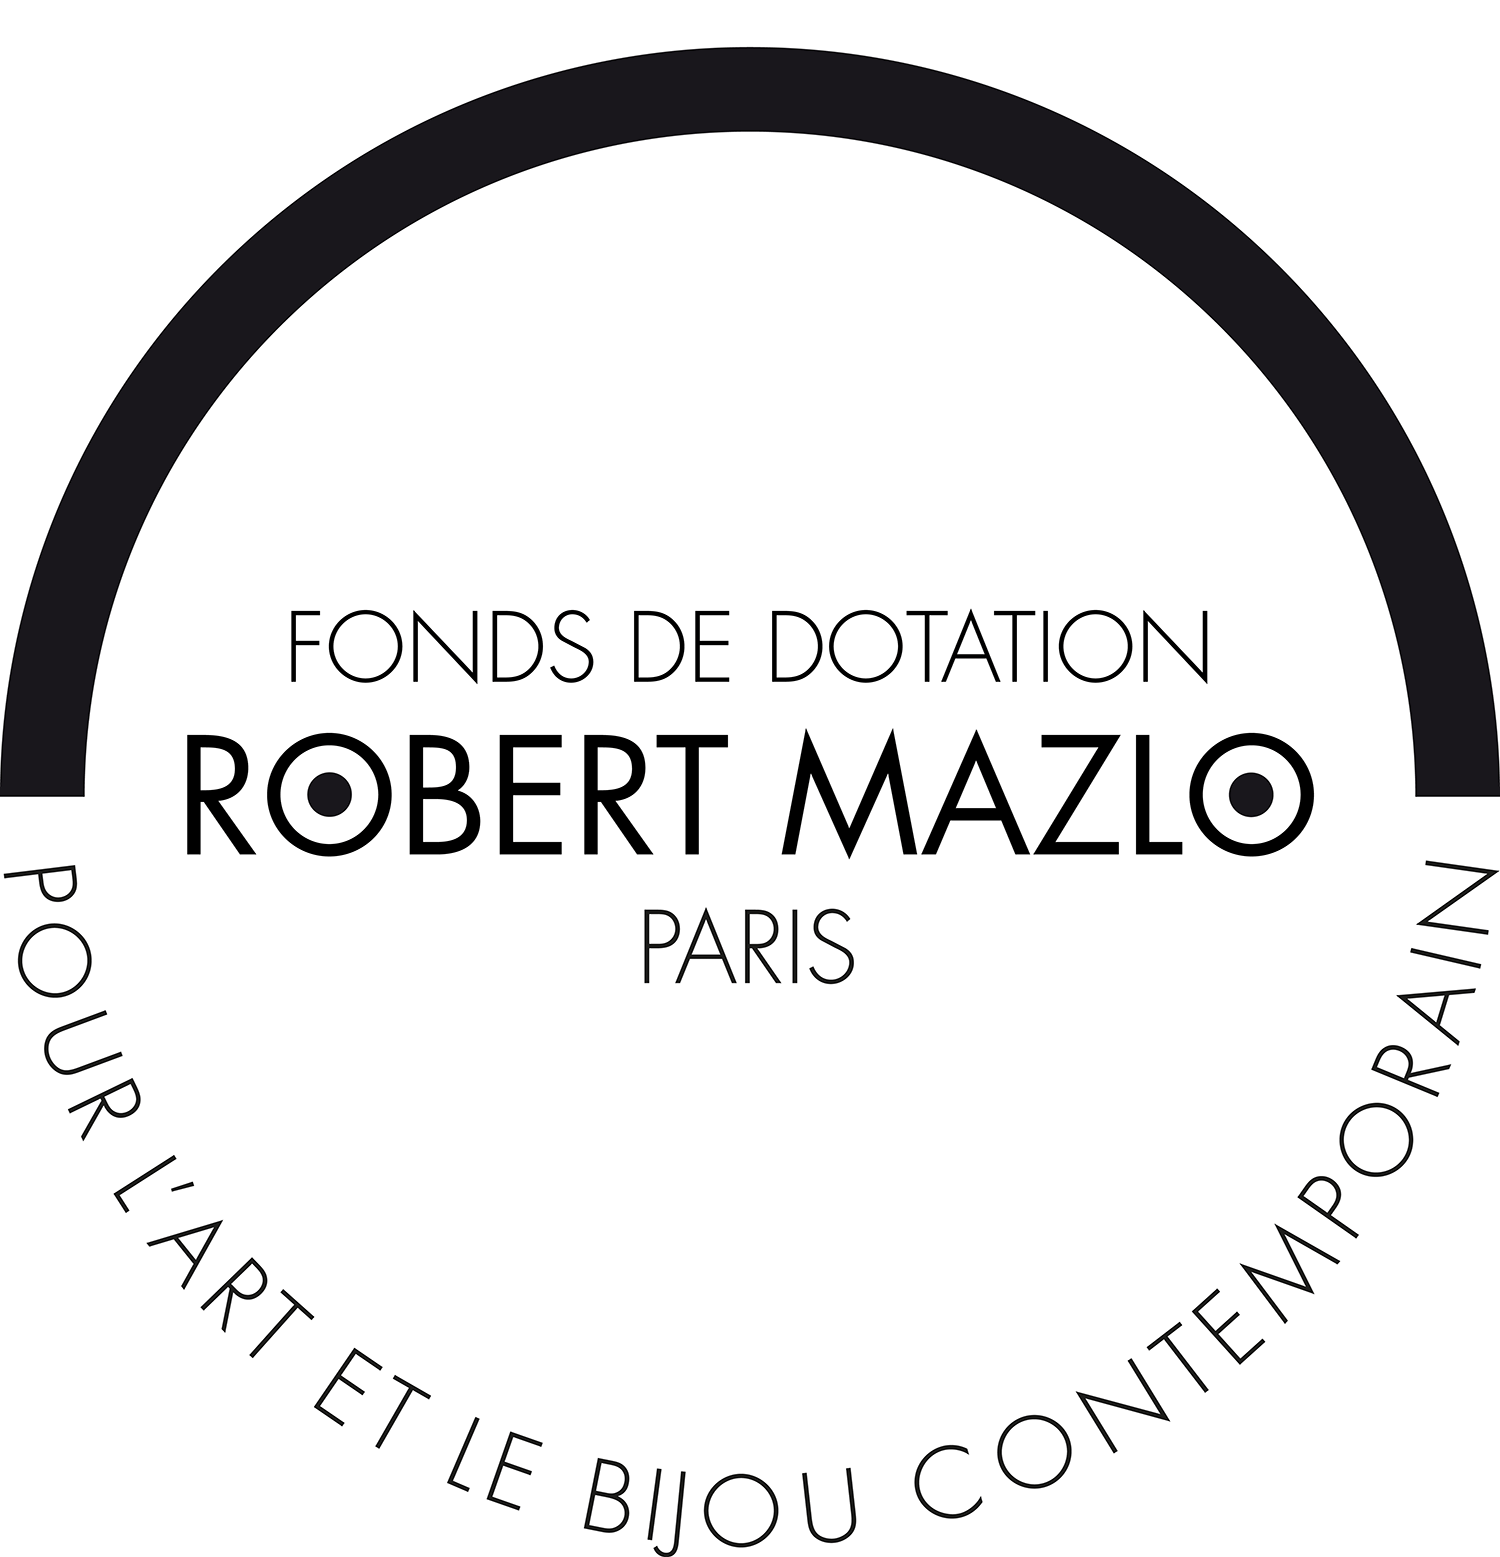 Robert Mazlo Endowment Fund for art and contemporary art jewellery